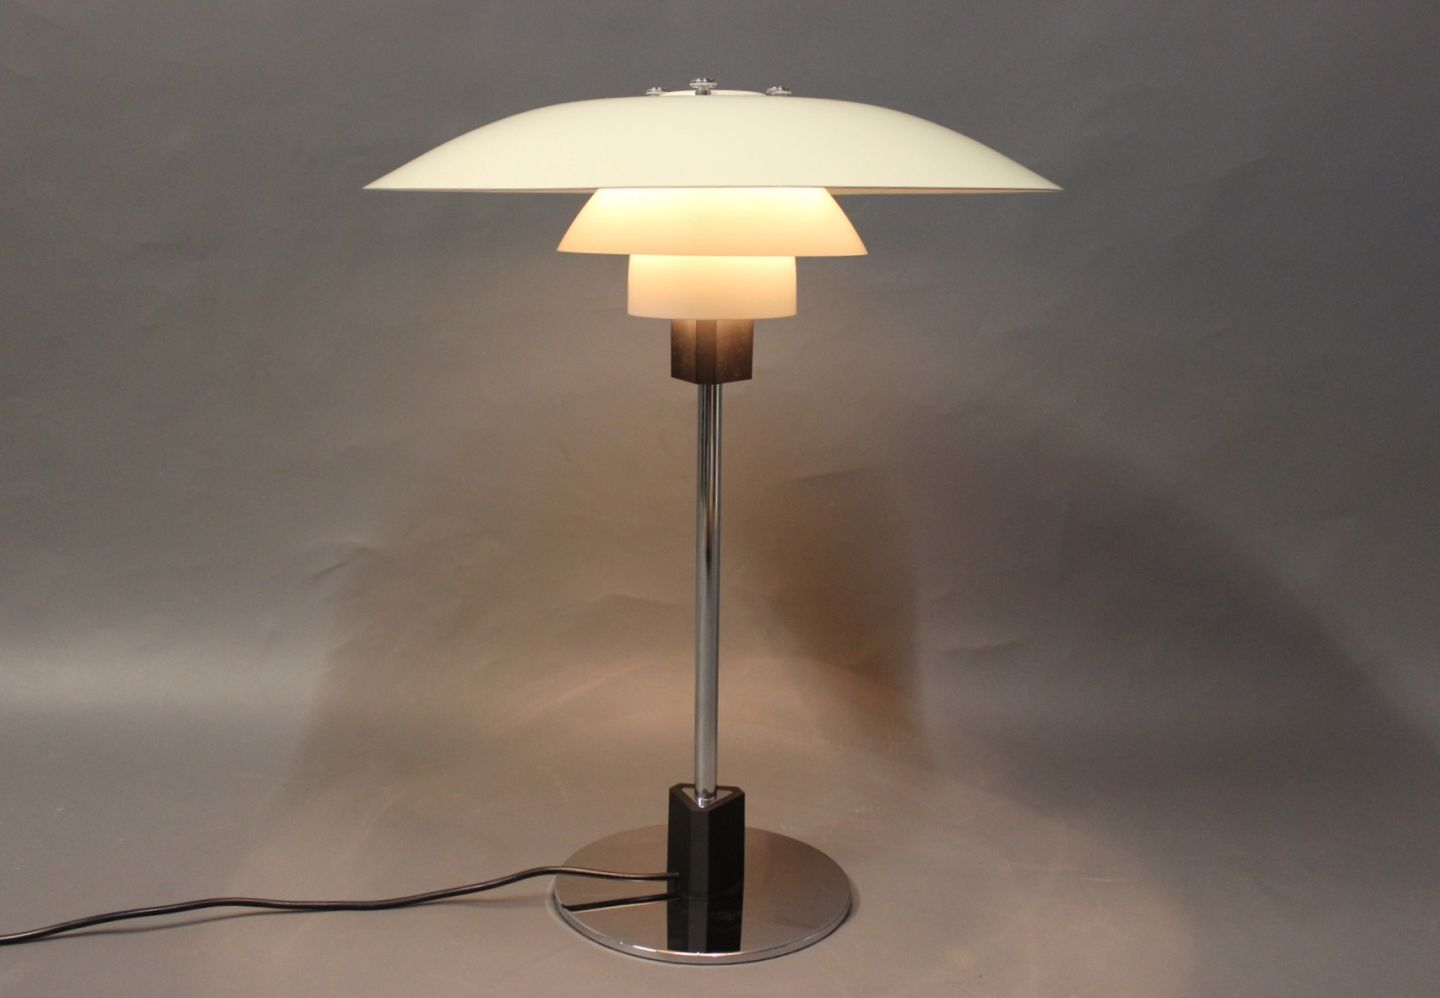 Poul Henningsen Lampe Ph 4 3 Table Lamp By Poul Henningsen And Louis Poulsen 5000m2 Showroom